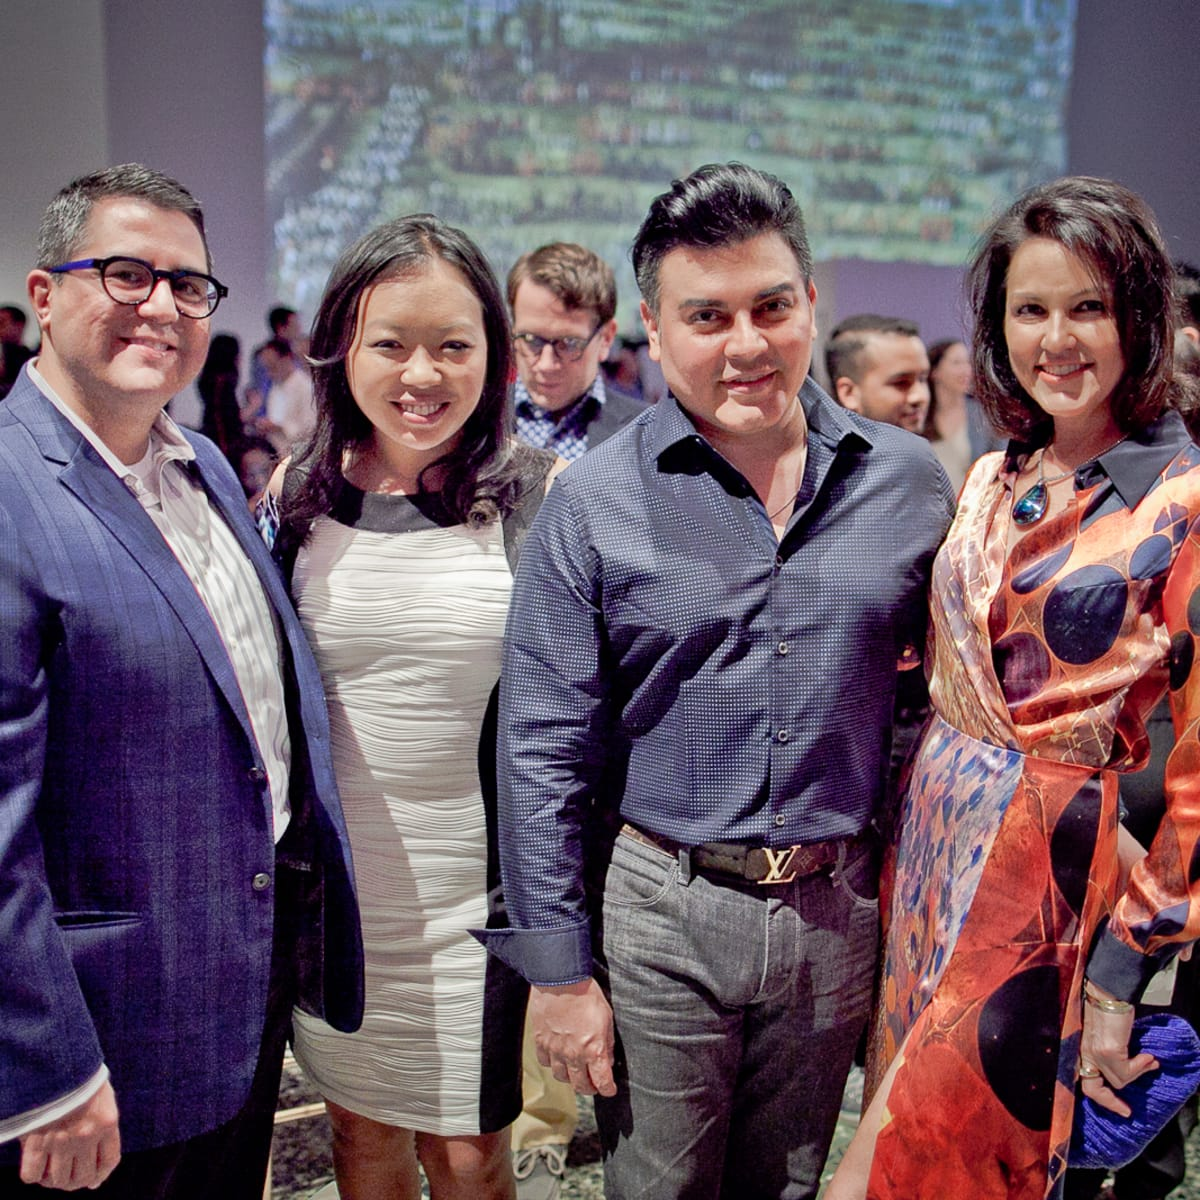 Houston, Fashion Fusion, June 2015, Roland Maldonado, Miya Shay, Edward Sanchez, Jessica Rossman